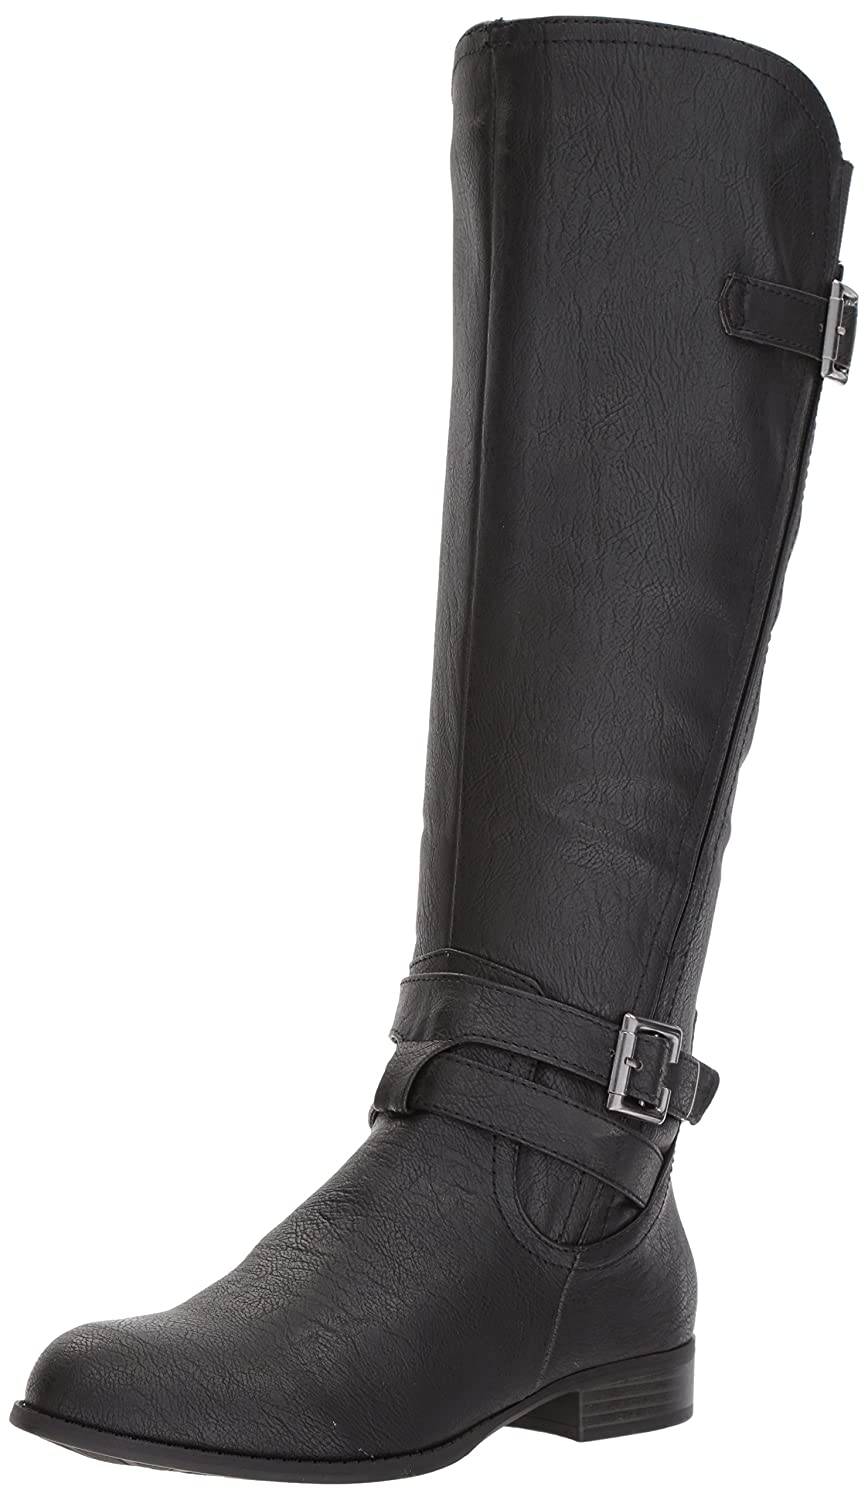 LifeStride Women's Francesca Knee High Boot B075G66RS5 9.5 B(M) US|Black